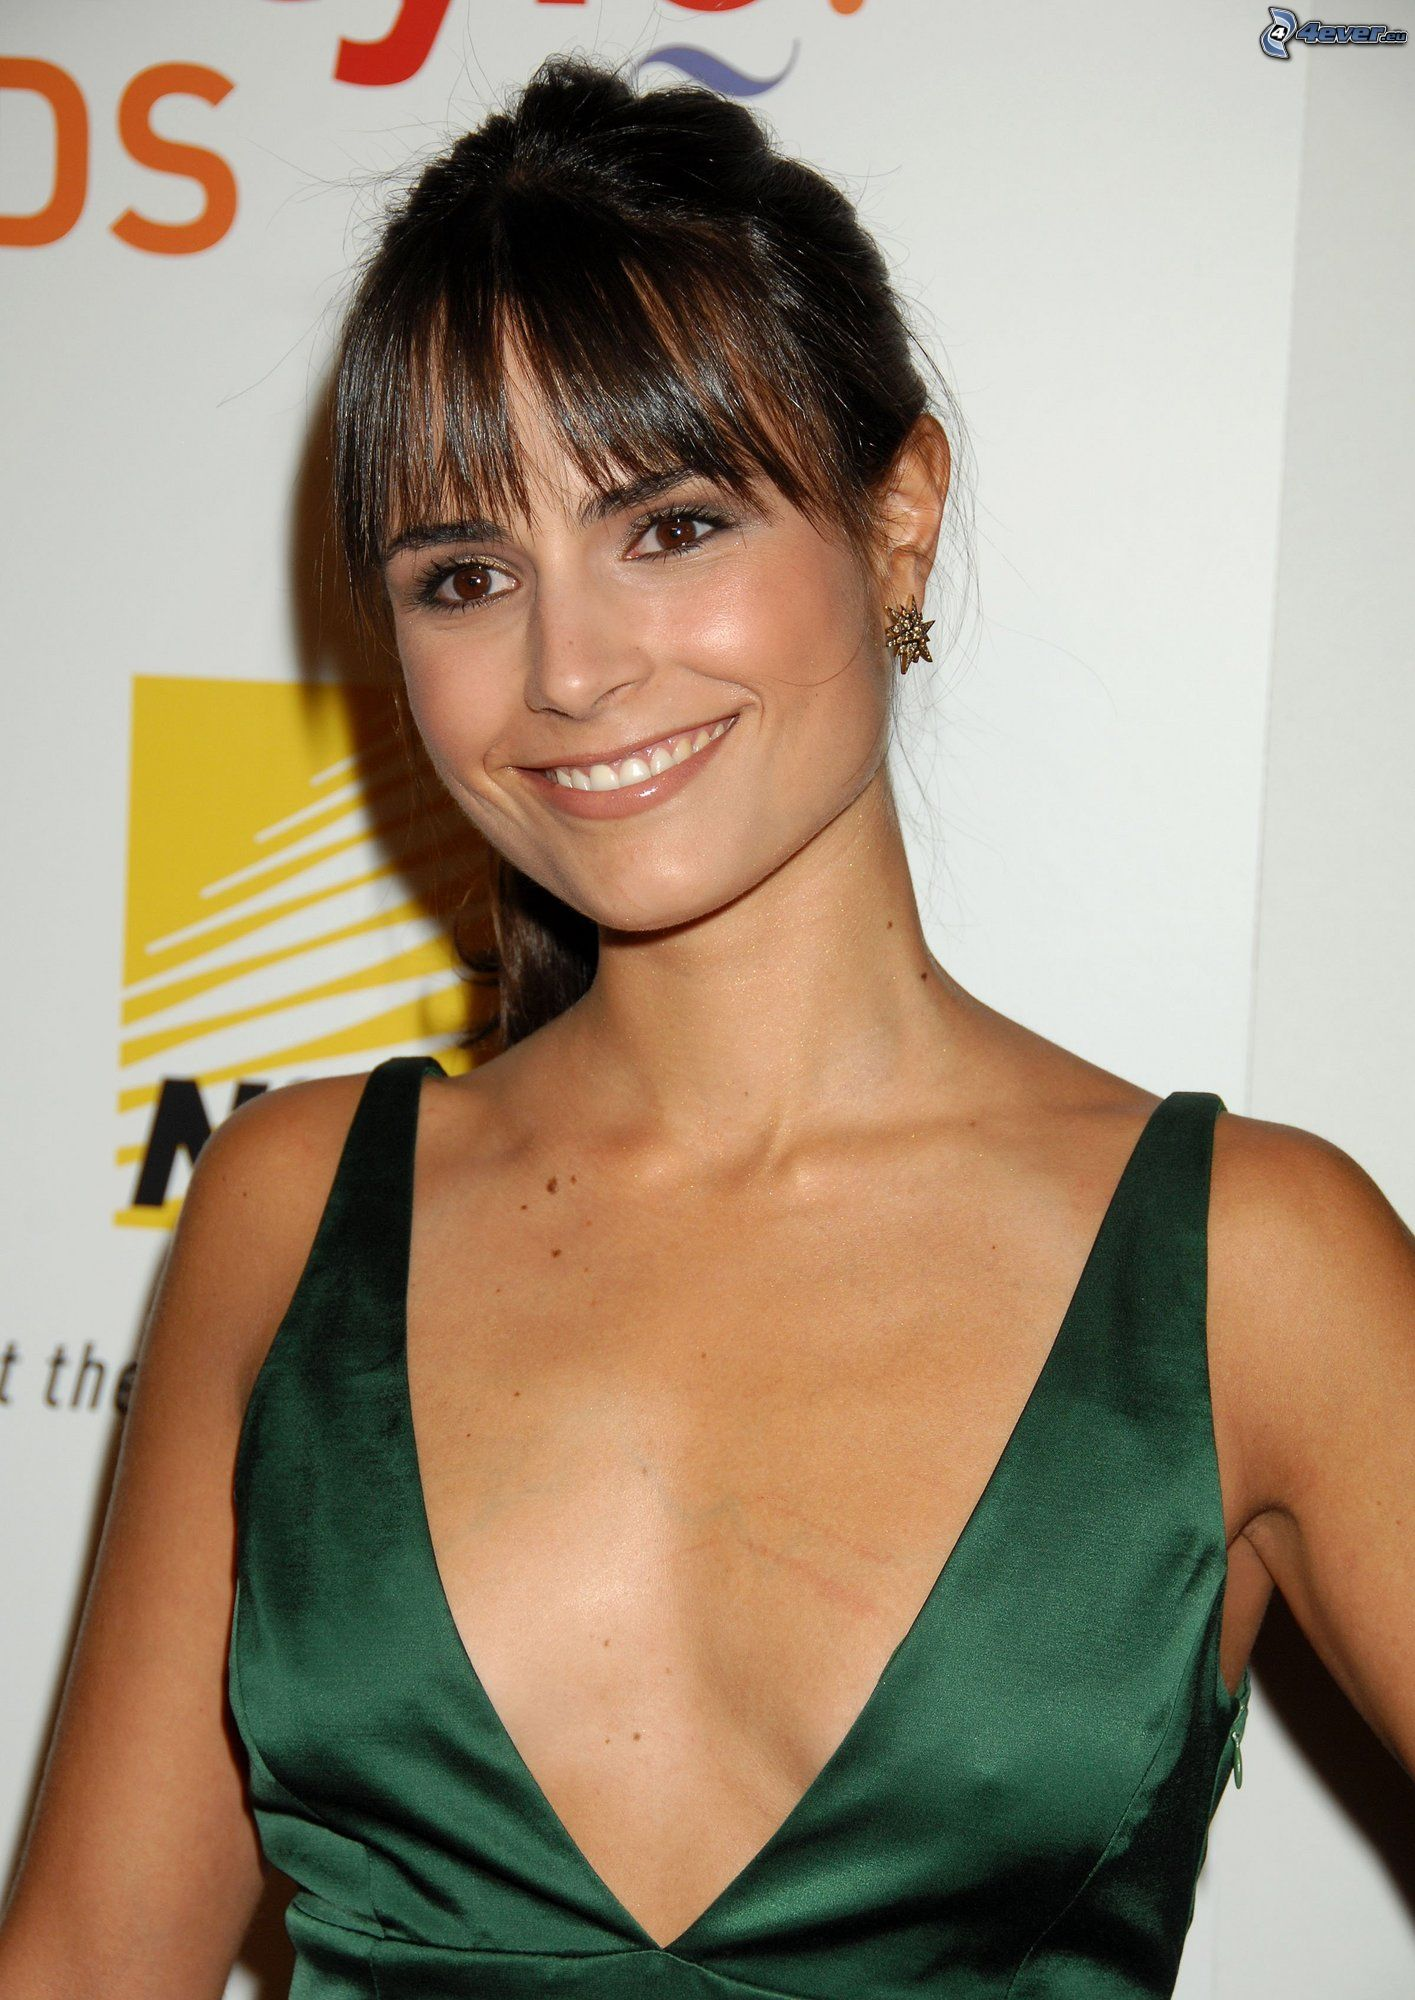 Cleavage Jordana Brewster nude photos 2019